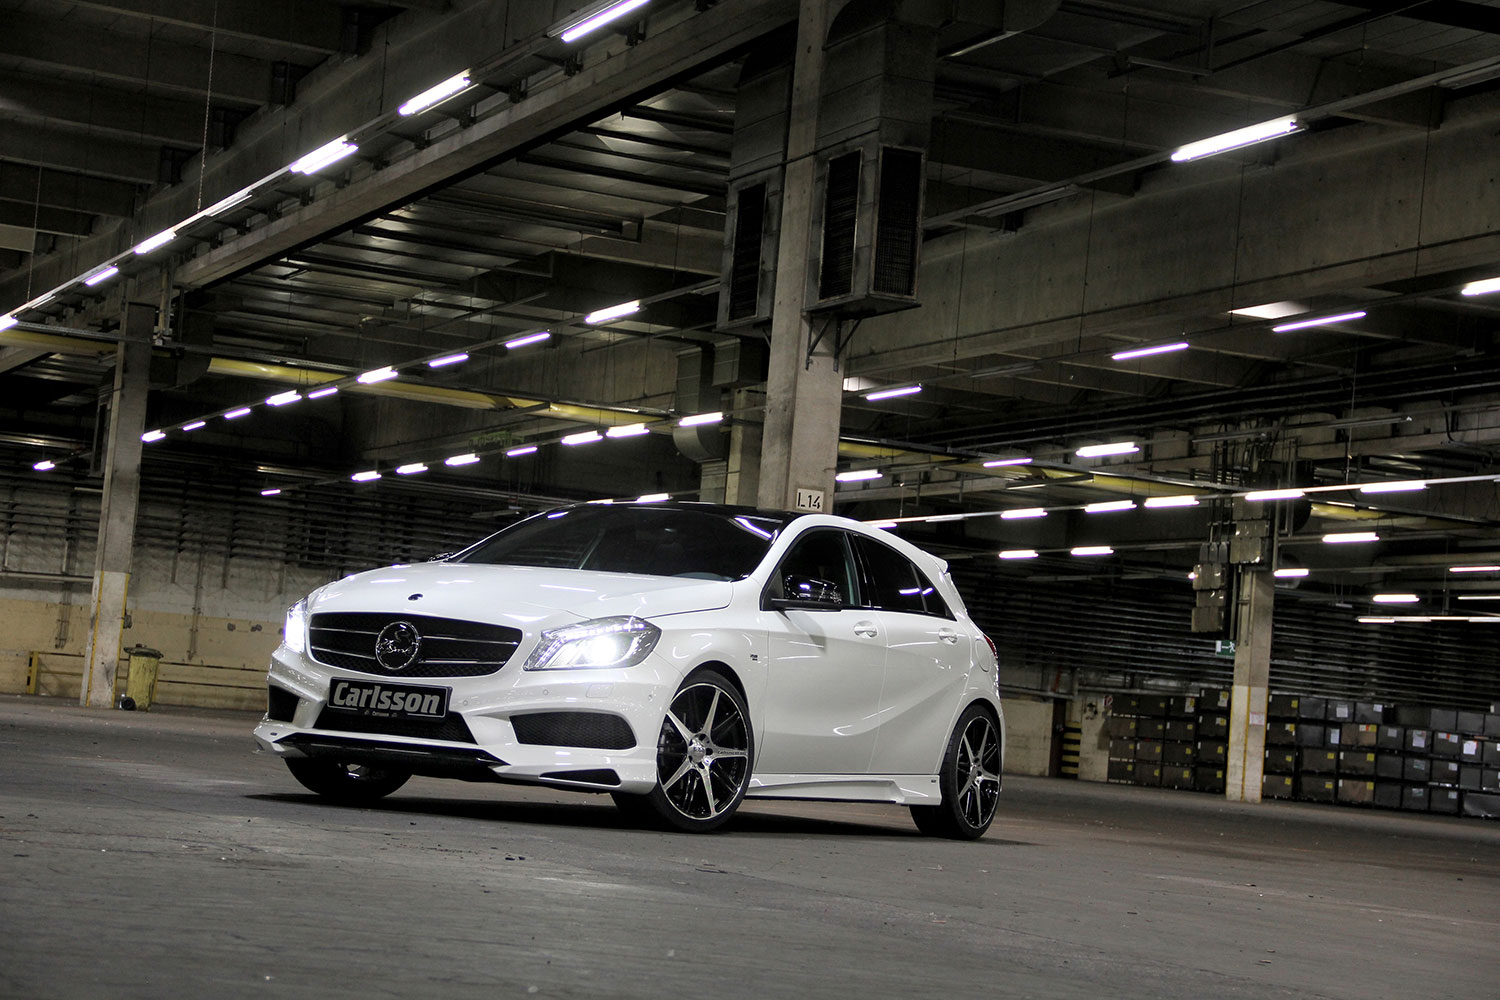 Carlsson Reveals Mercedes A-Class Upgrade Kit at 2013 IAA